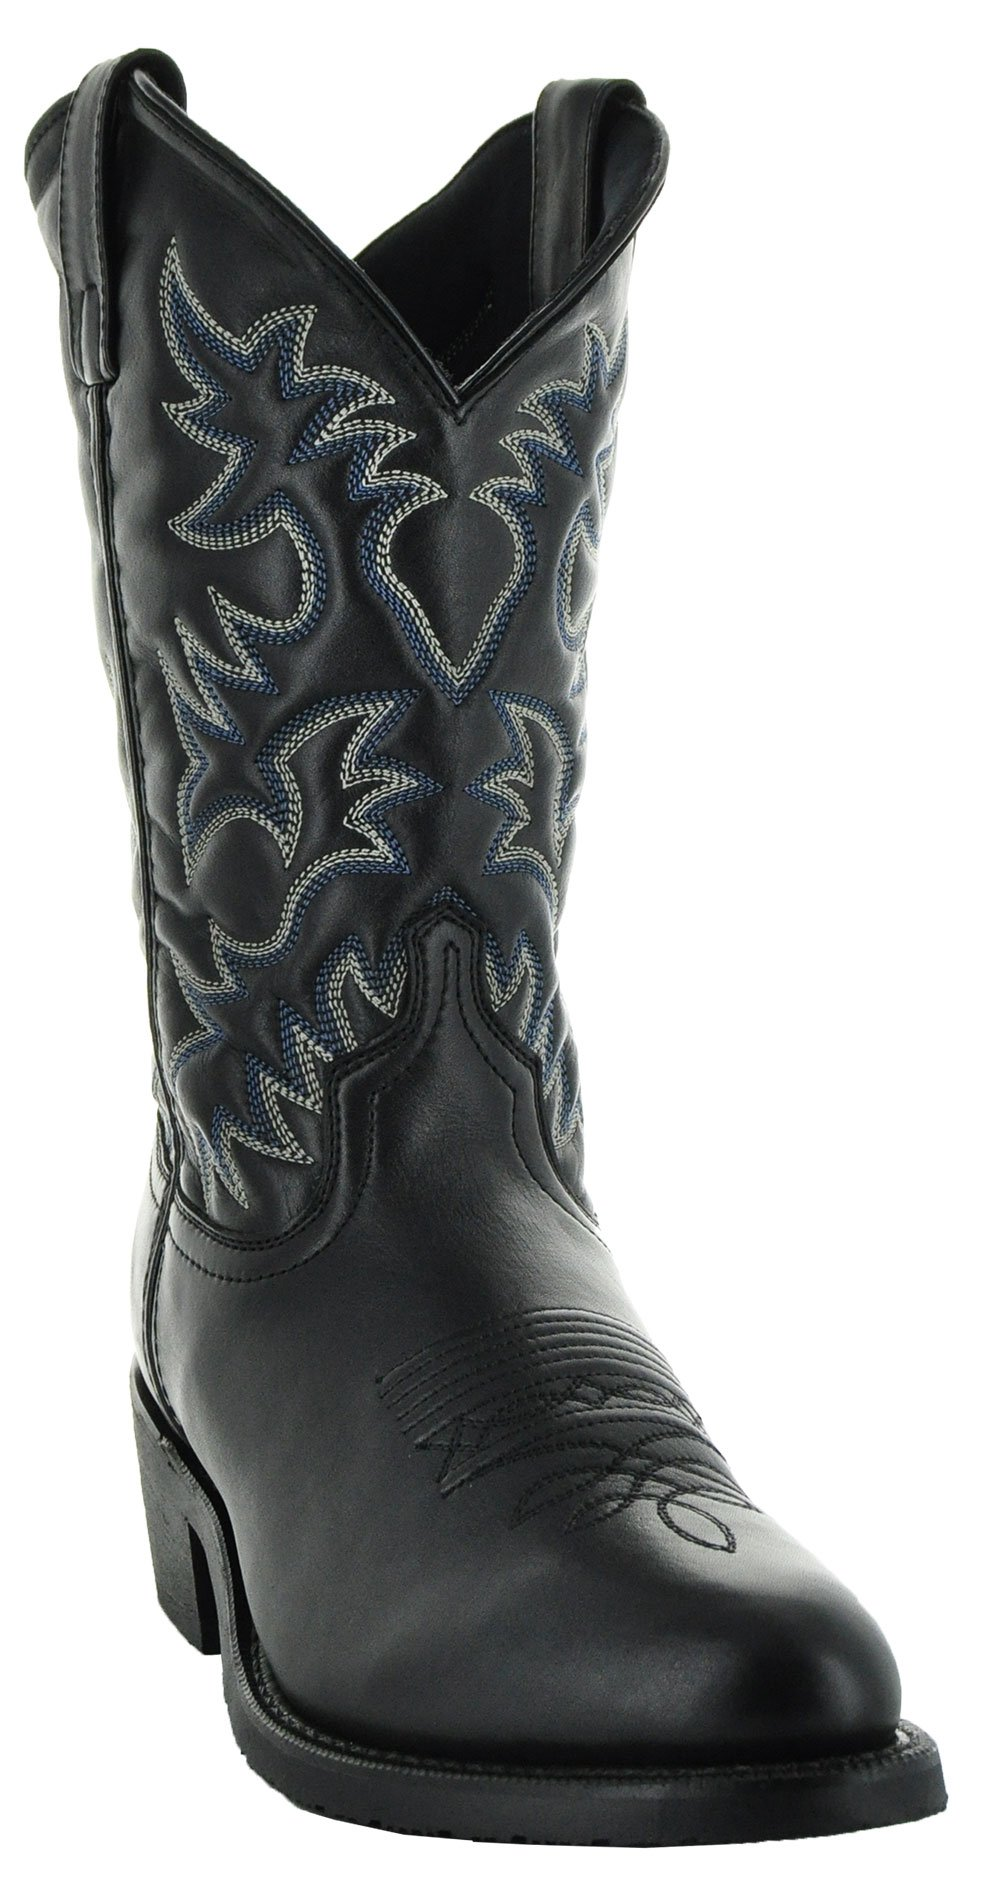 Soto Boots Round Toe Western Men's Boots by H3001 (8.5, Black)